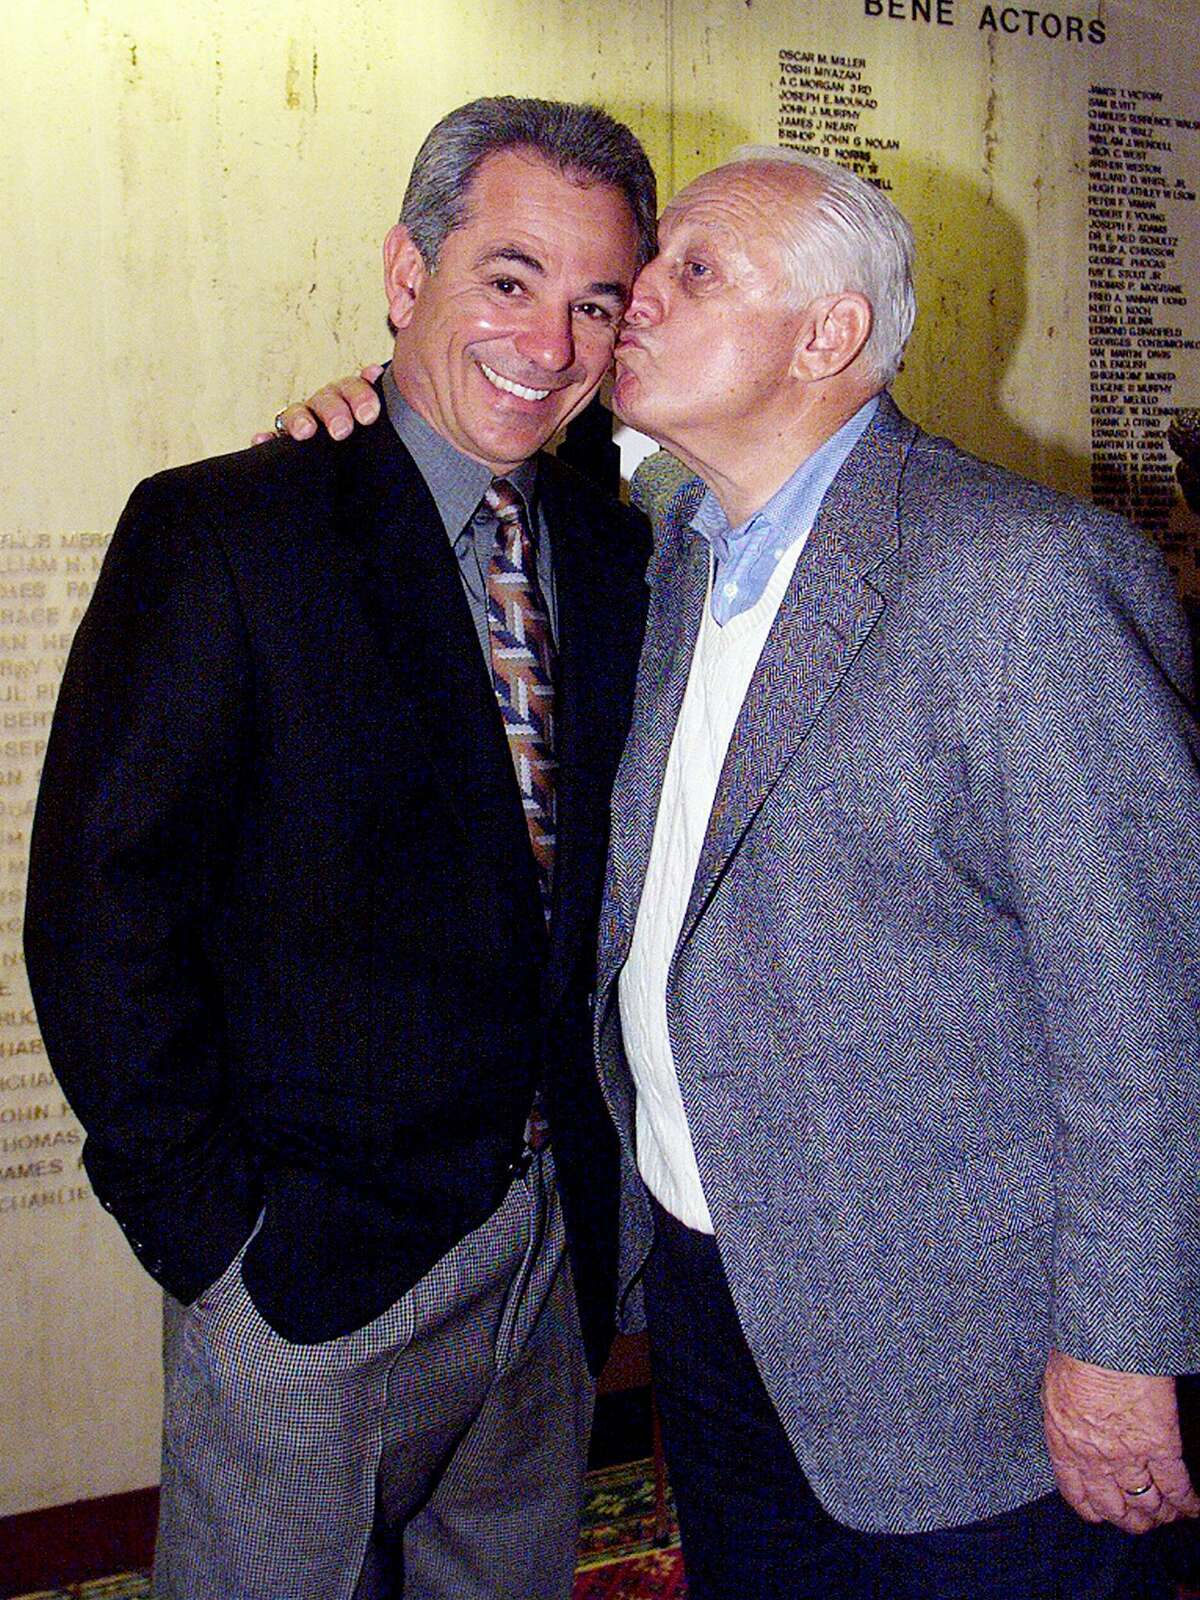 Mets' manager Bobby Valentine gets a kiss from Dodgers' vice president Tommy Lasorda at the New York Athletic Club, where Valentine was honored as the club's manager of the year.